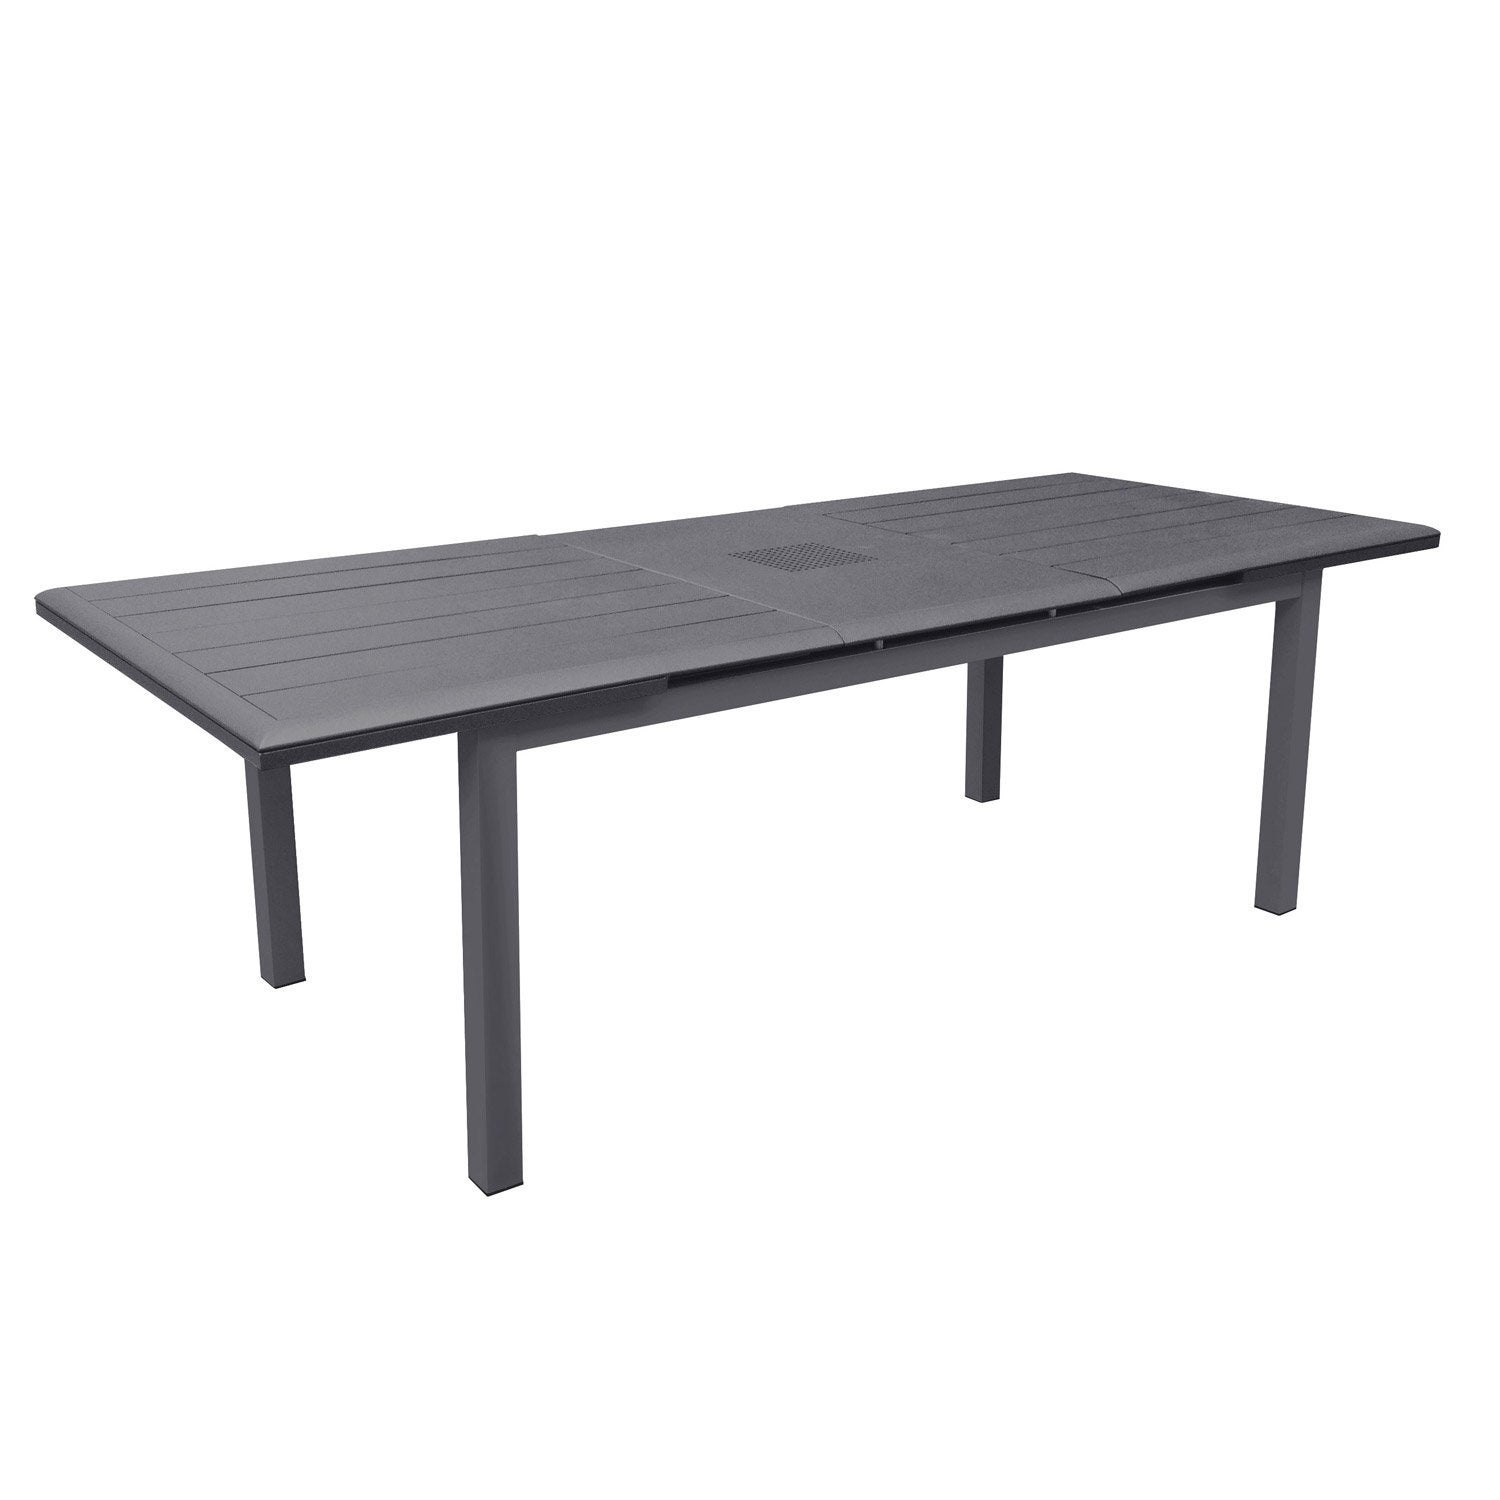 Table de jardin louisiane rectangulaire gris 6 8 personnes for Intermarche table de jardin